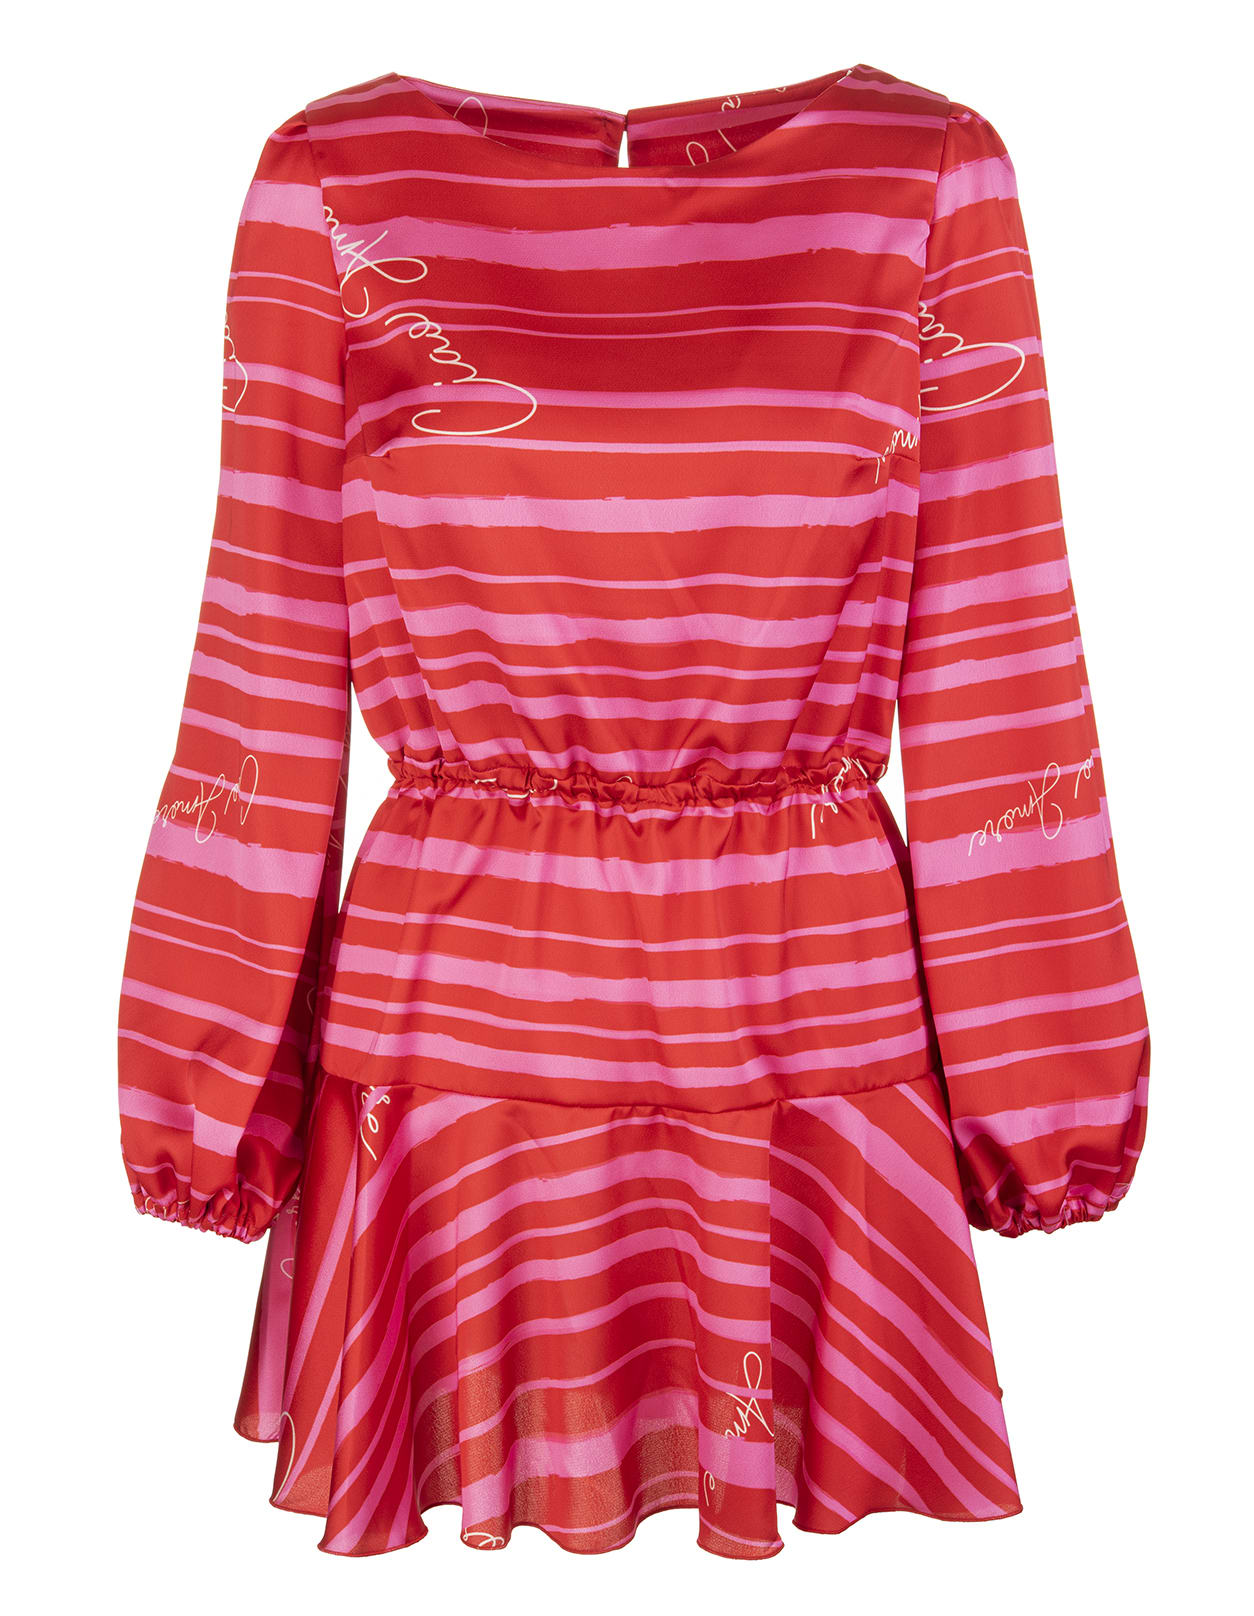 Pink And Red Striped Short Dress